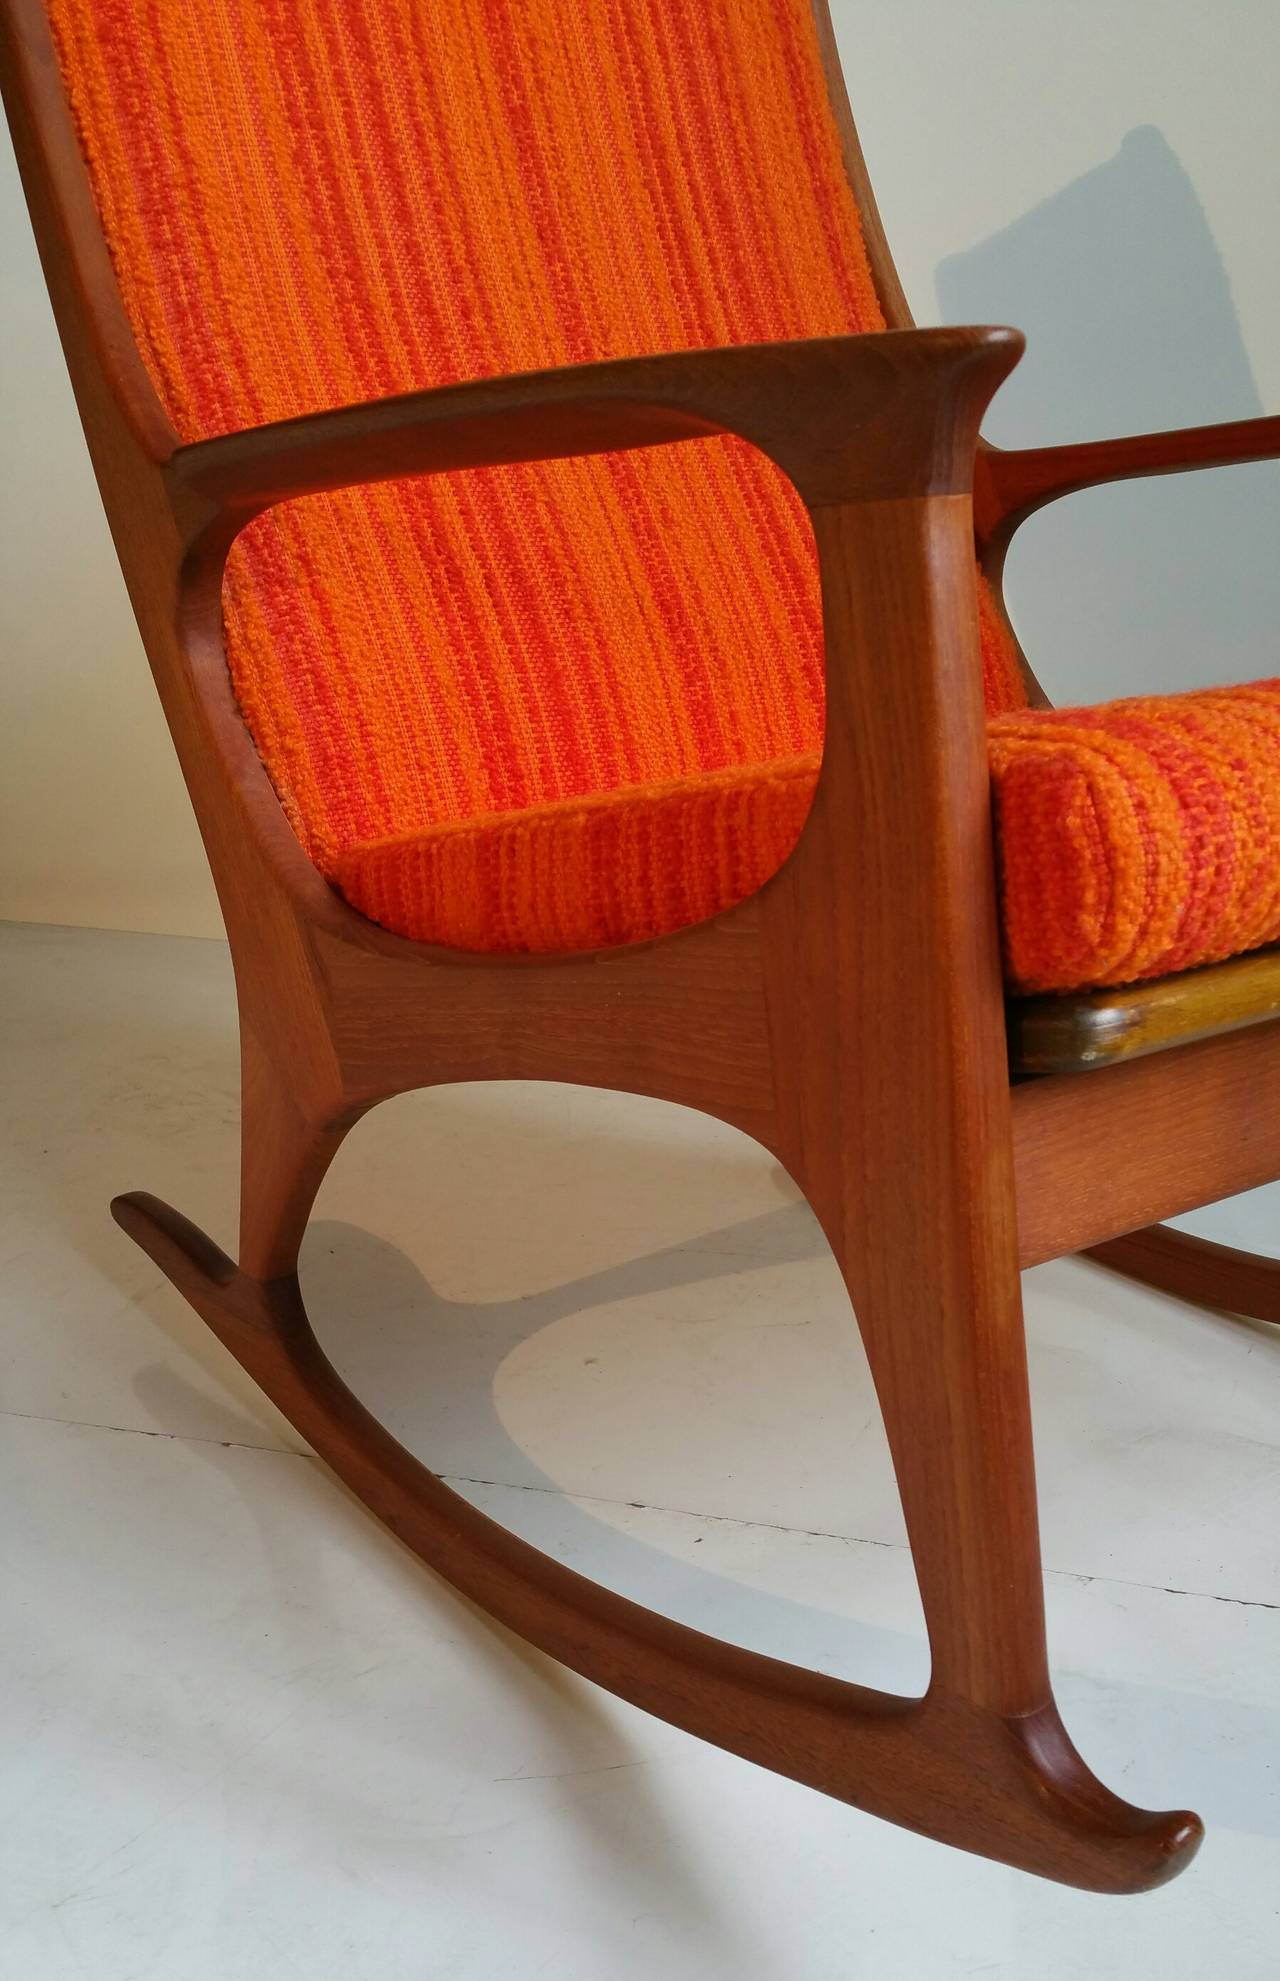 Beautiful Curves And Elegant Craftsmanship Adorn This Vintage Rocker Made Of Solid Teak With Exquisite